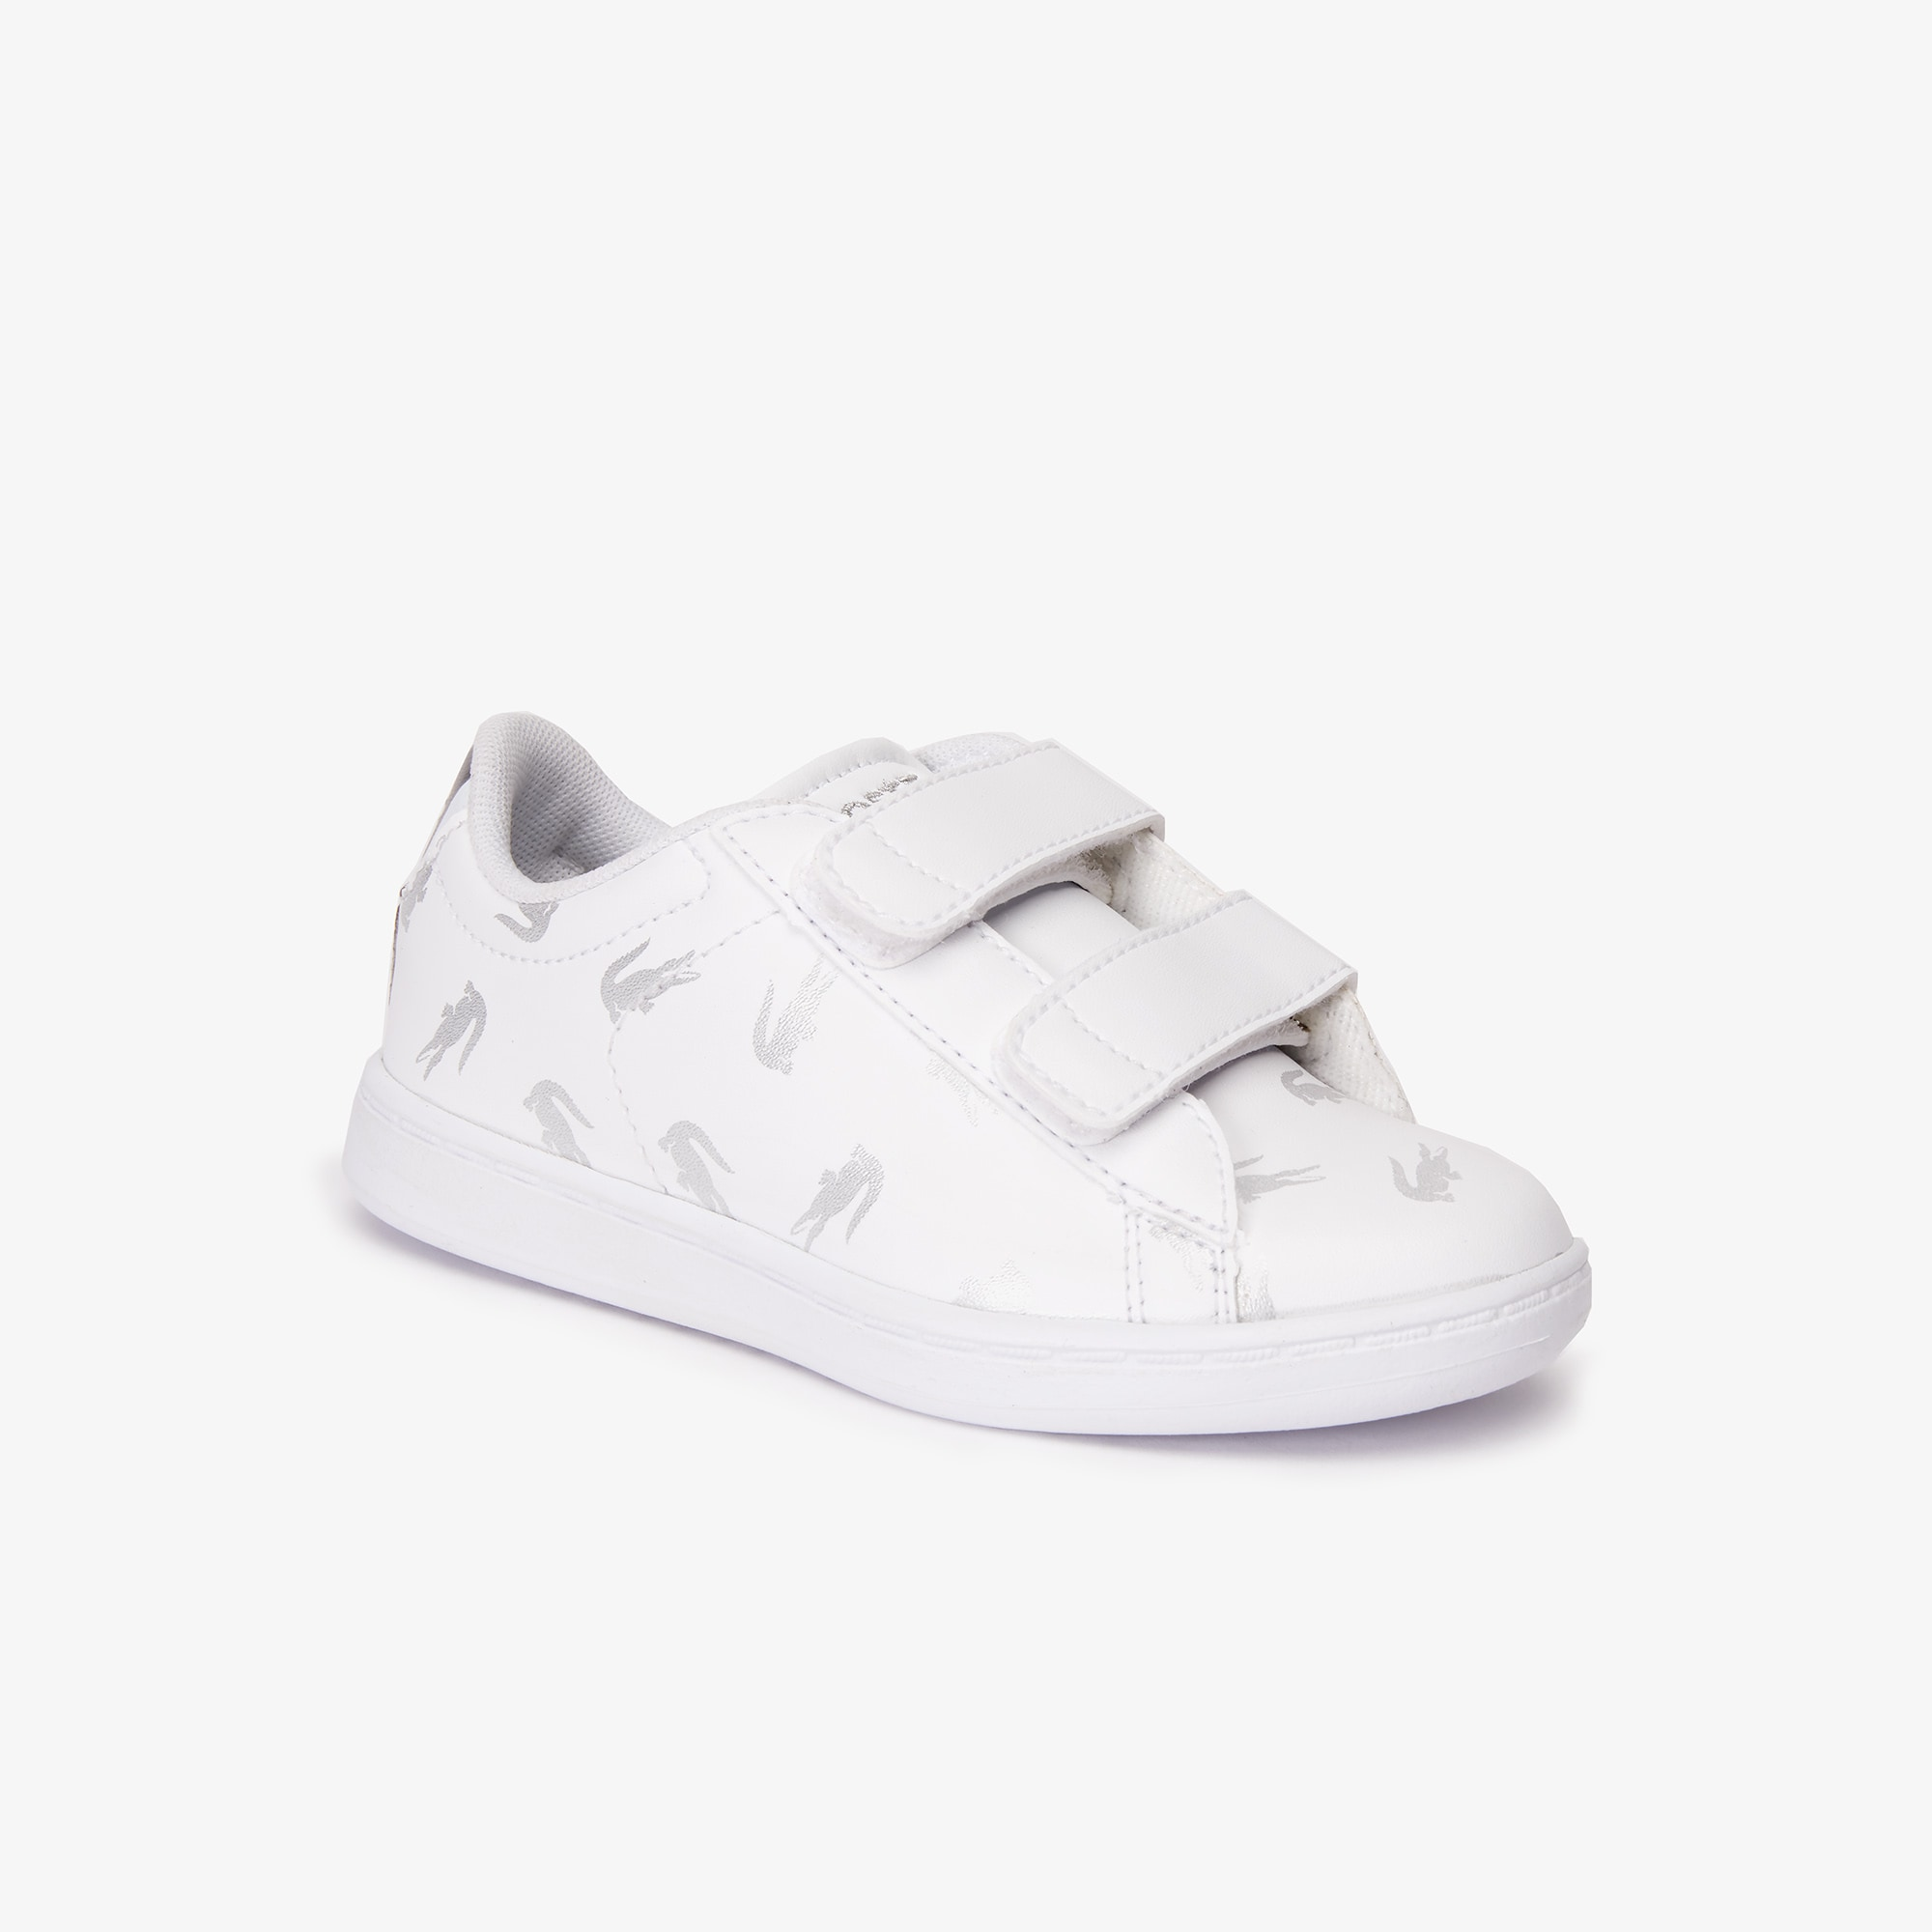 라코스테 남아용 스니커즈 Lacoste Infants Carnaby Evo Synthetic Trainers with Multi-Croc Prints